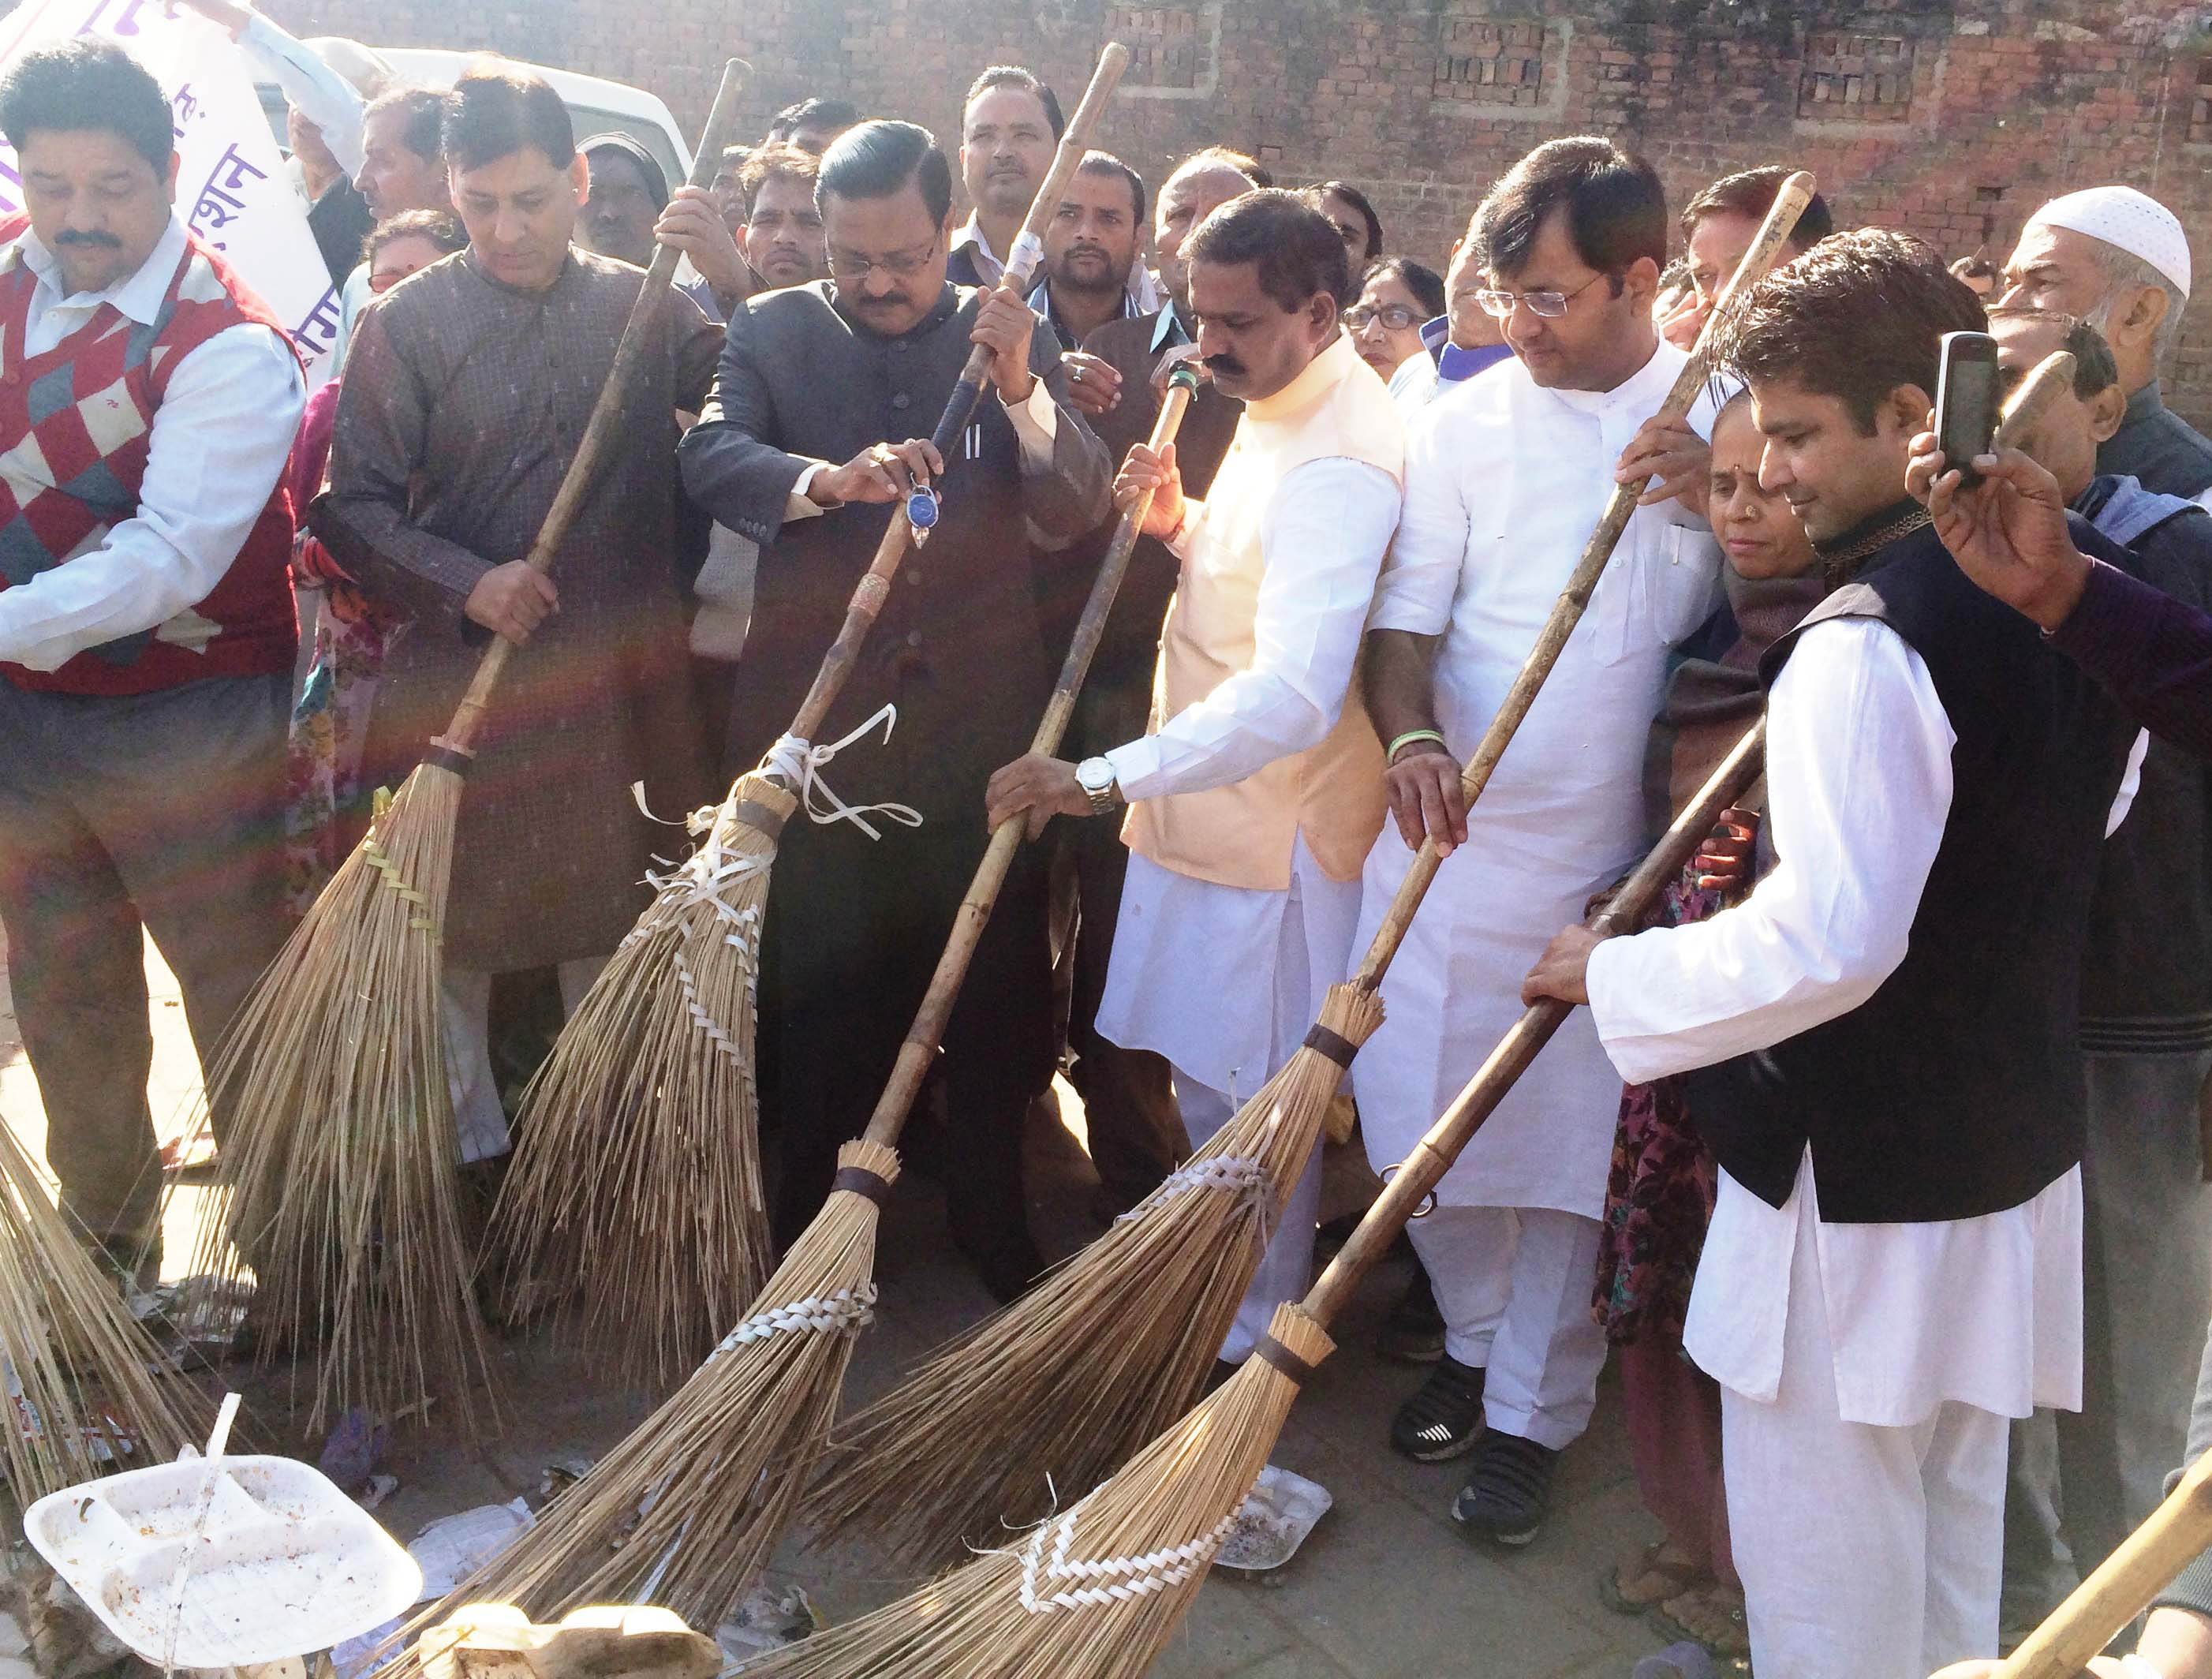 Satya Pal Jain, Davesh Moudgil and Narinder Choudhary participating in cleanliness drive in Daddu Majra Colony